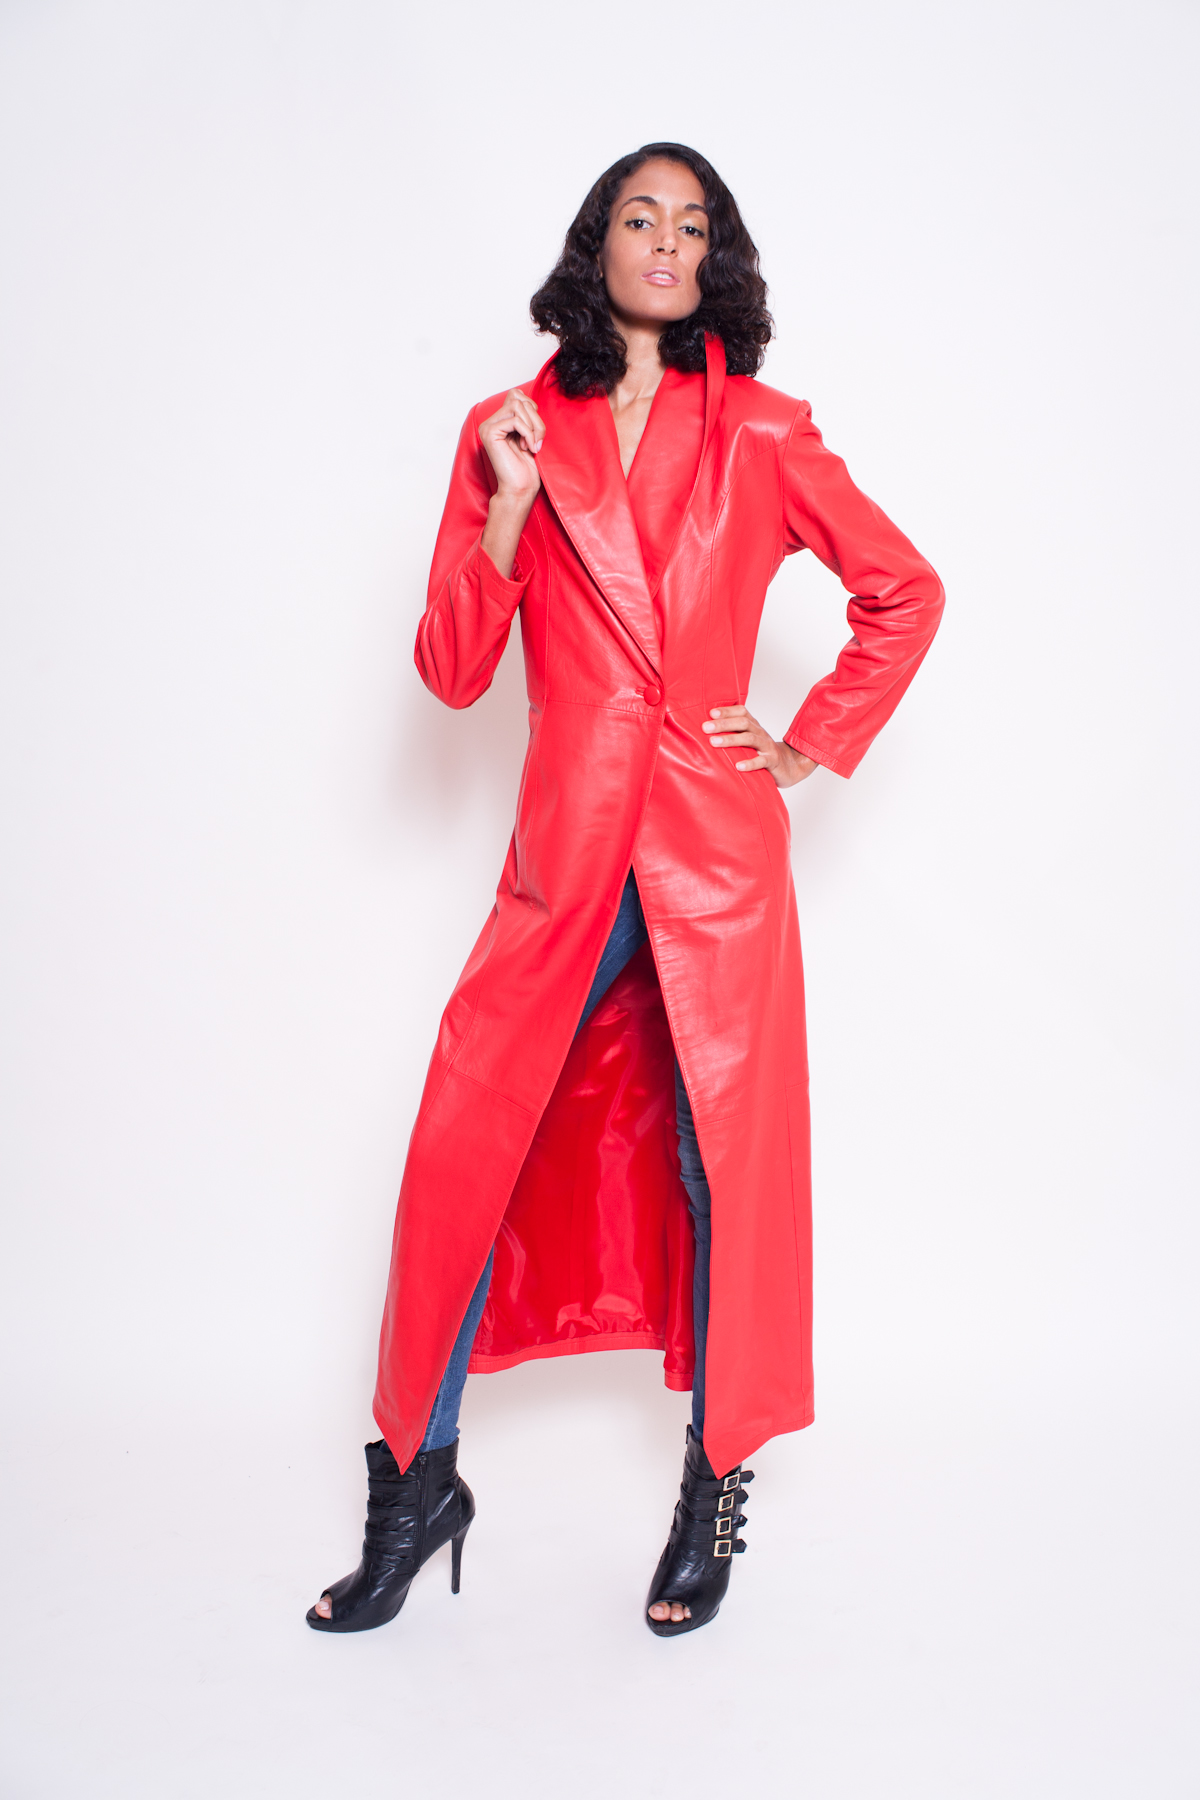 Women's Lambskin Leather Coat -$400 (Leather Clothing) Colors: Red Black. Sizes:  X-Small Small Medium Large X-large 2XL(+$30) 3XL(+$30) ... This women's lambskin leather coat is the ultimate in a fashion statement from New York. Wear it